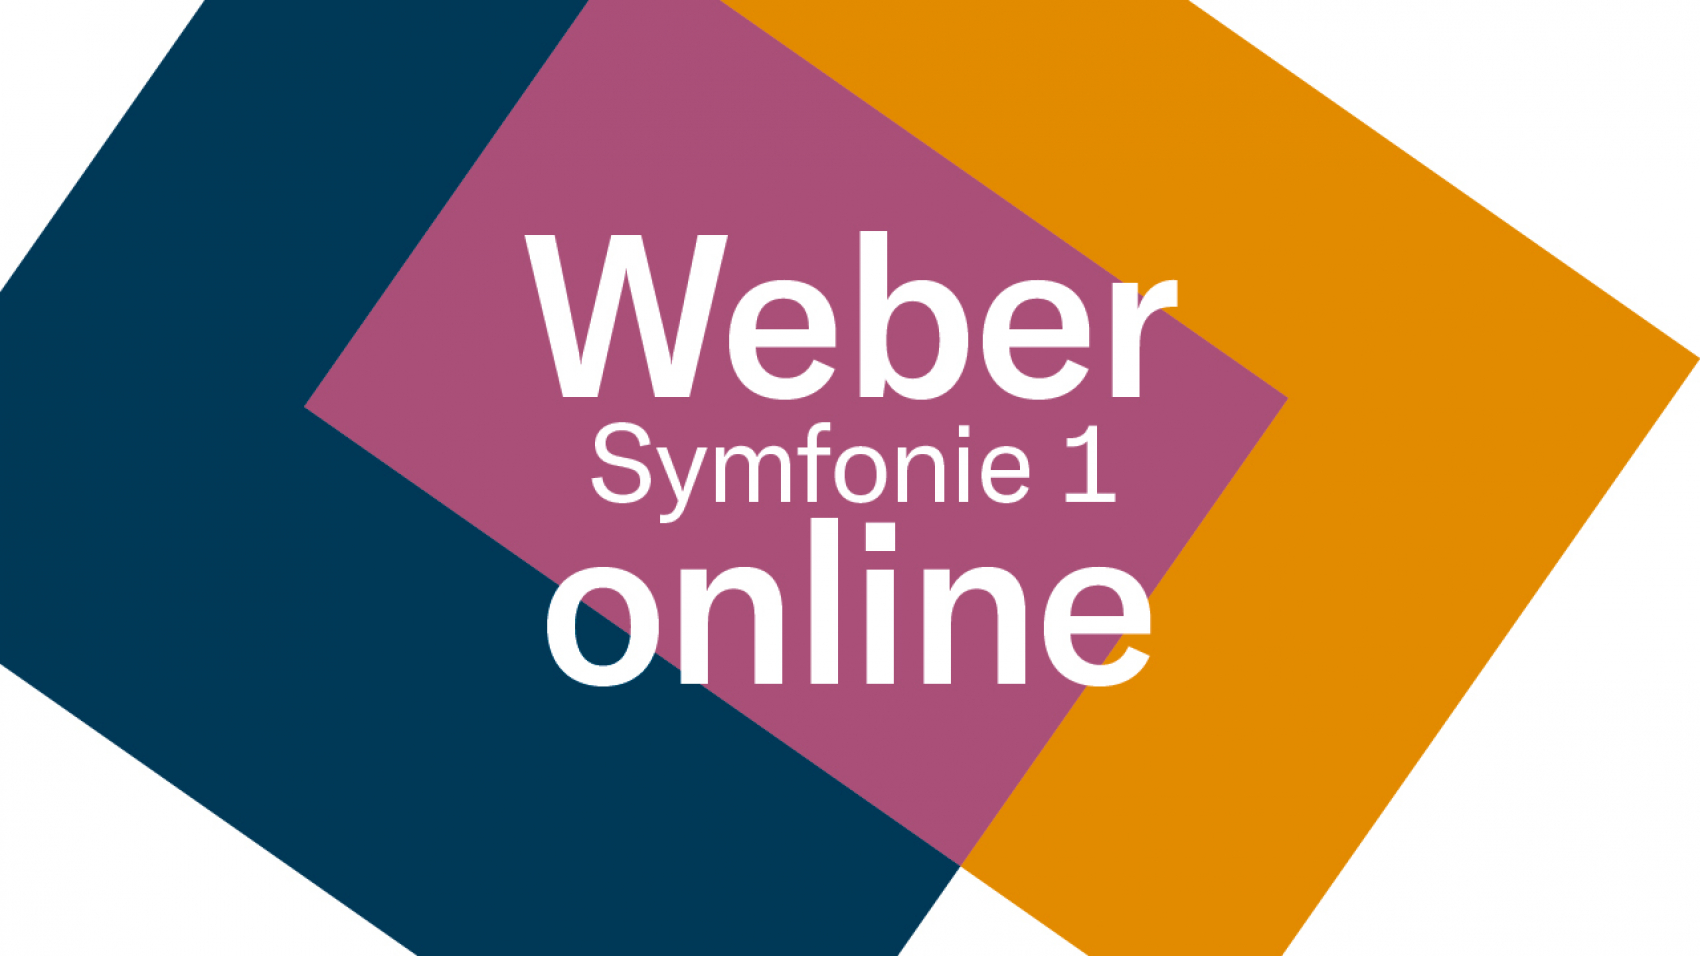 Concert stream: The Netherlands Chamber Orchestra plays Weber